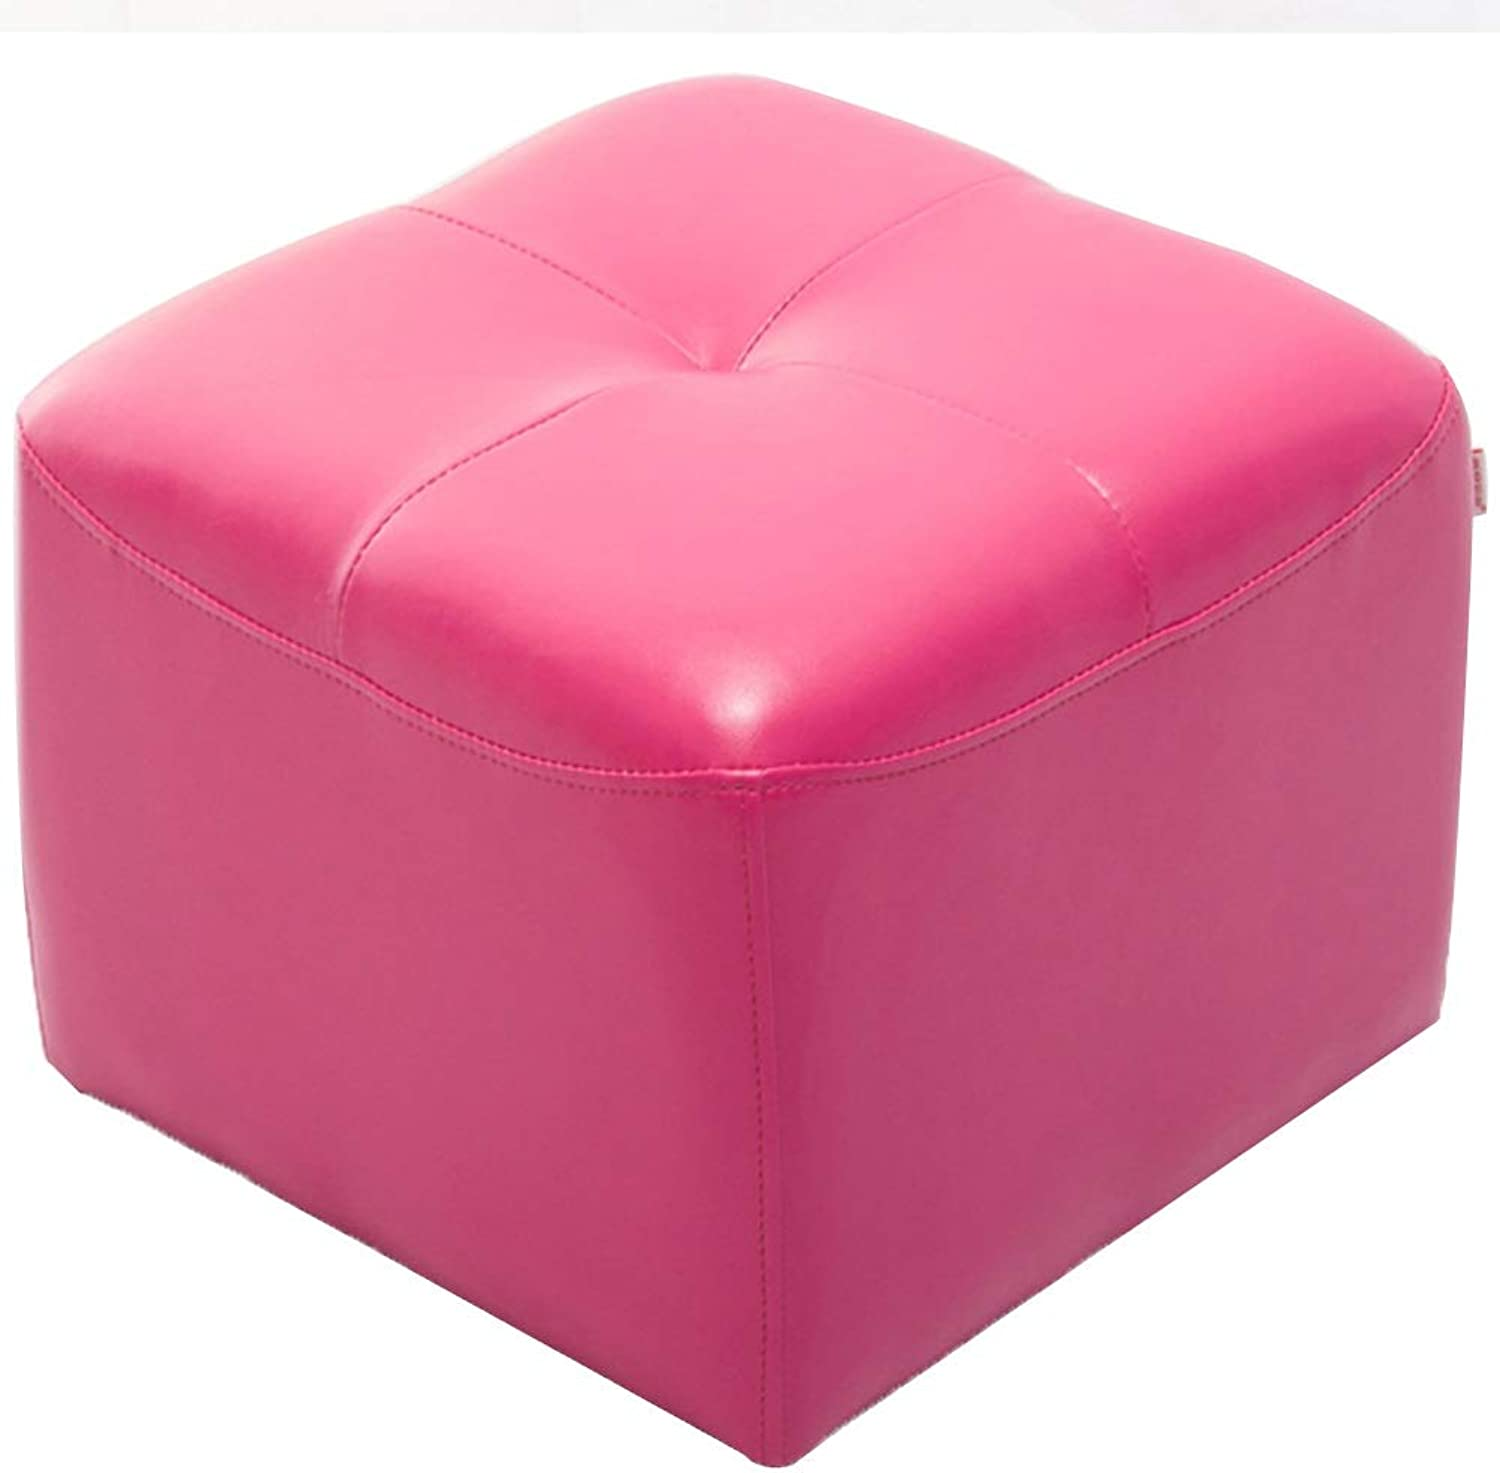 BYPING Pouffes and Stool Upholstered Footstools Solid Wood PU Plastic Foot Pad Bedroom Cotton Breathable, 6 colors (color   Pink, Size   42x42x34CM)